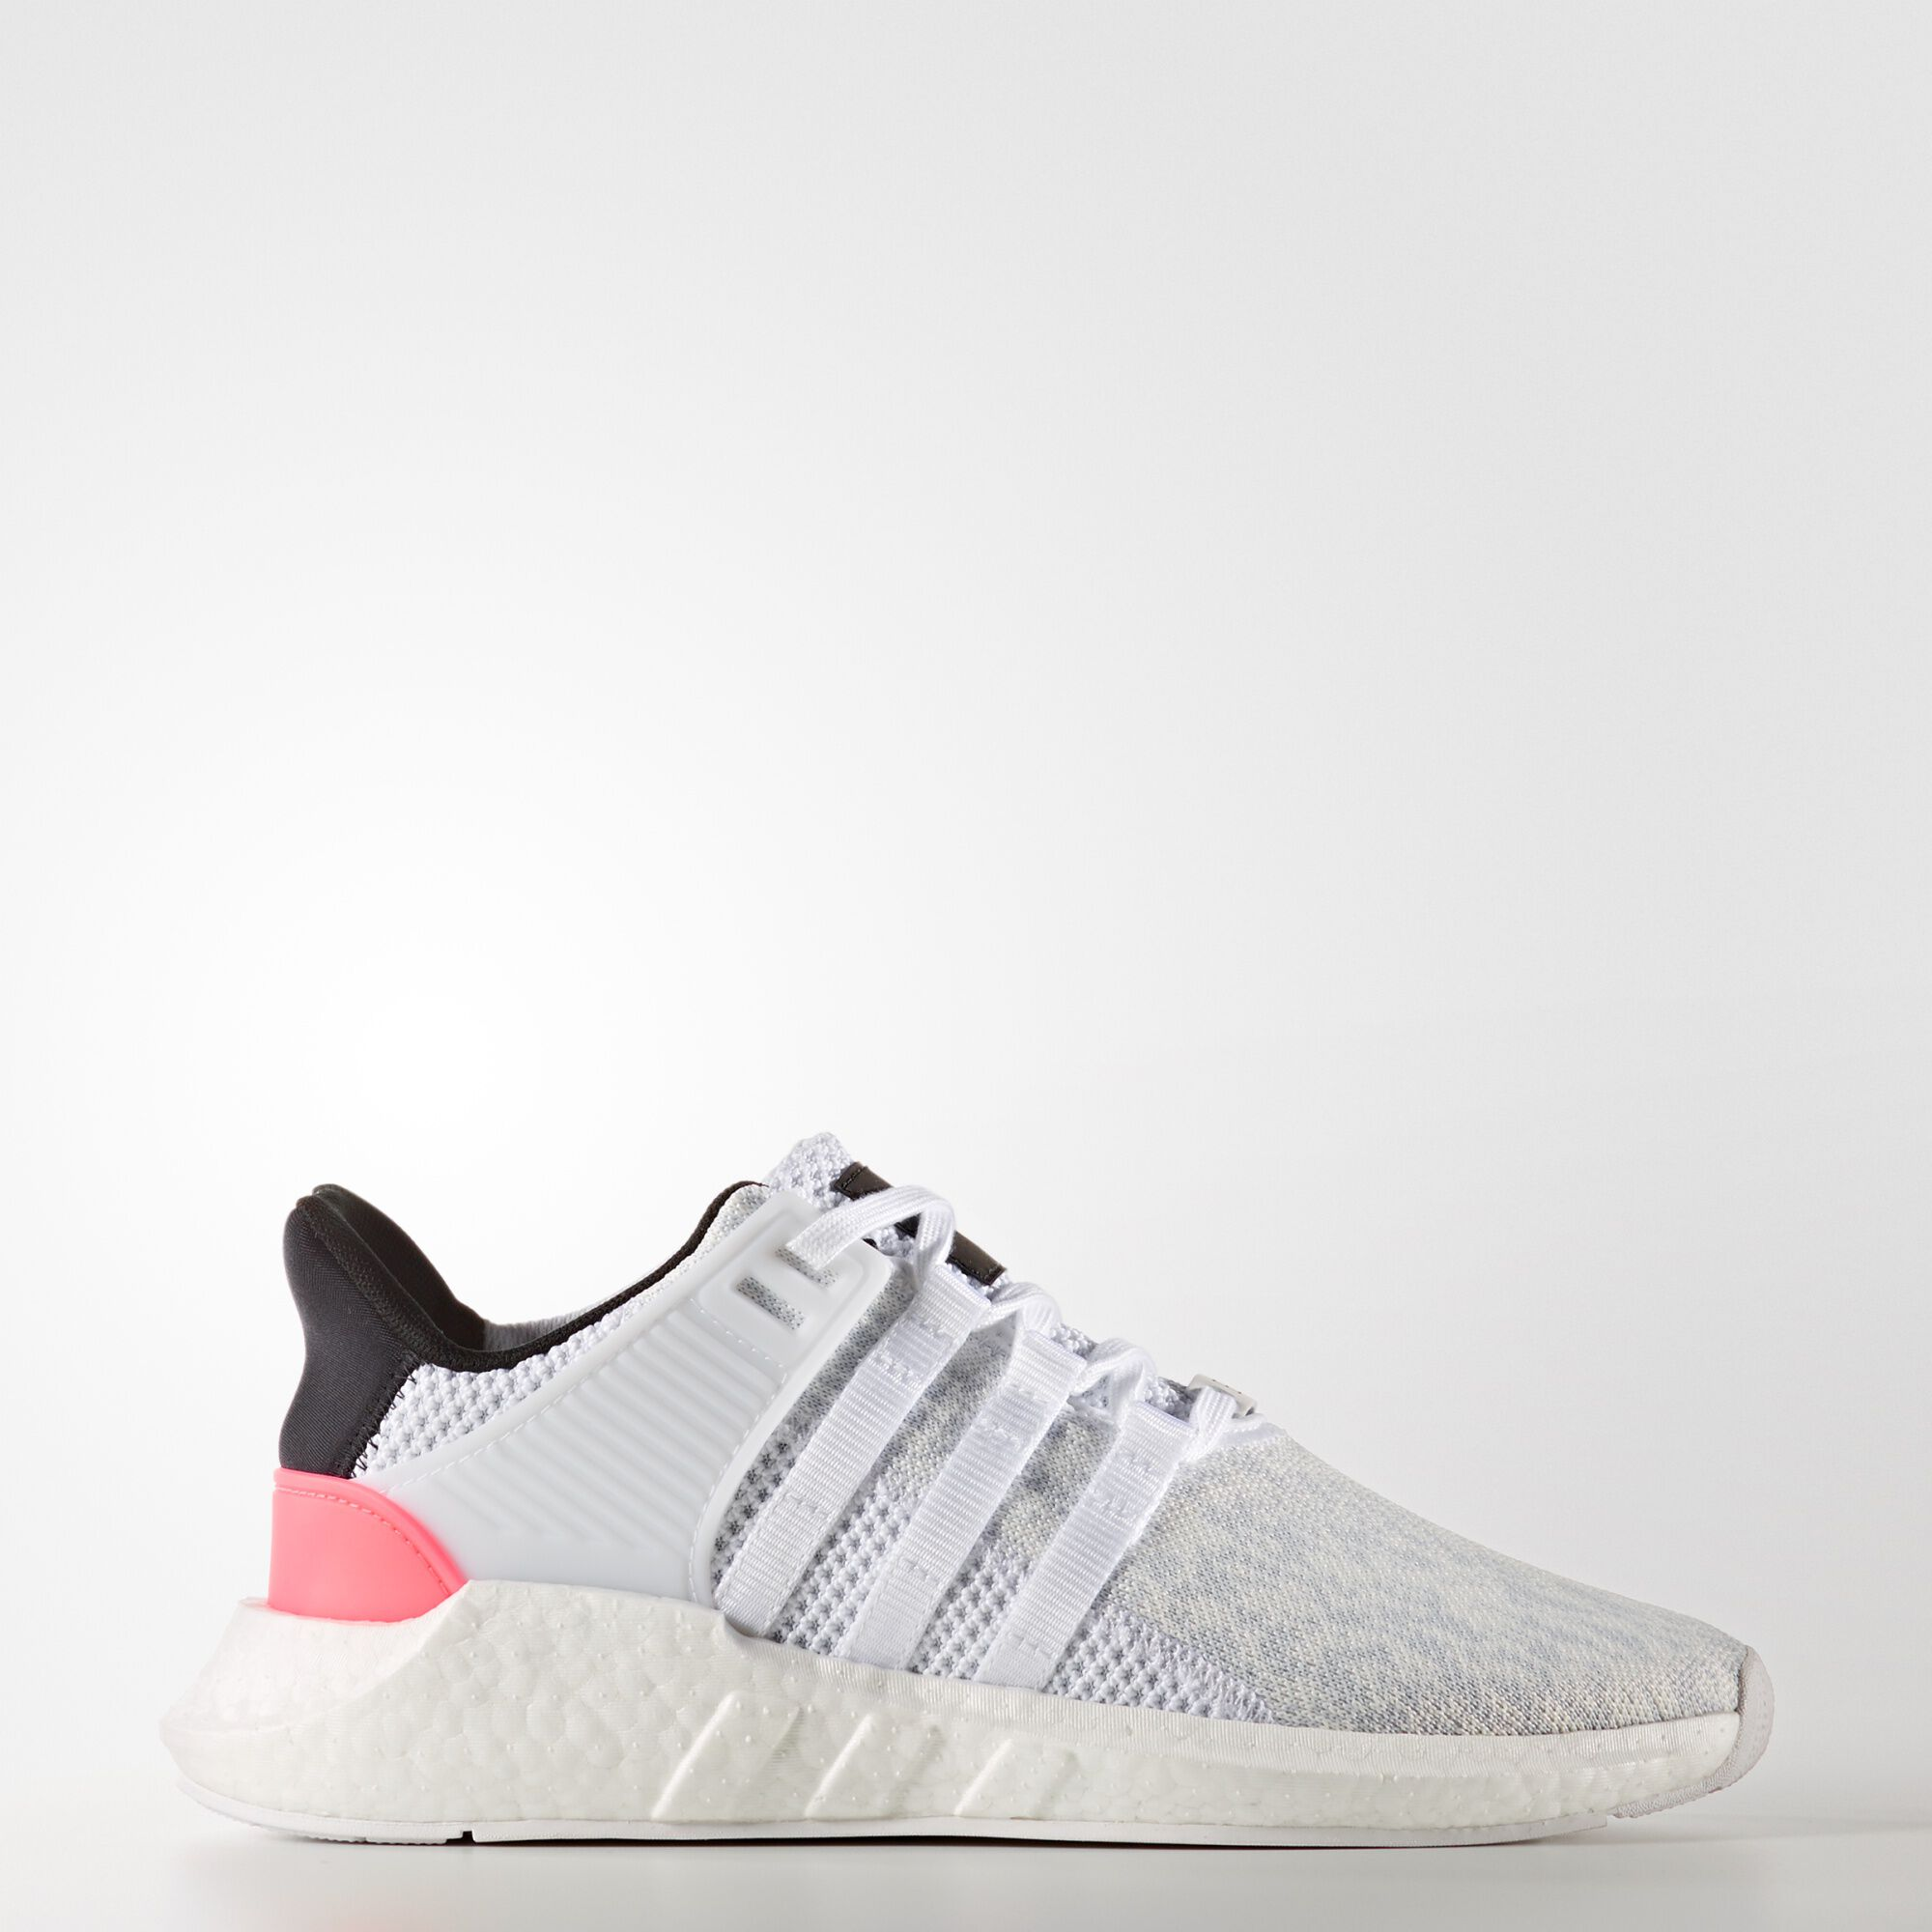 Adidas EQT Support Ultra Pk Black NOIRFONCE Sneakers